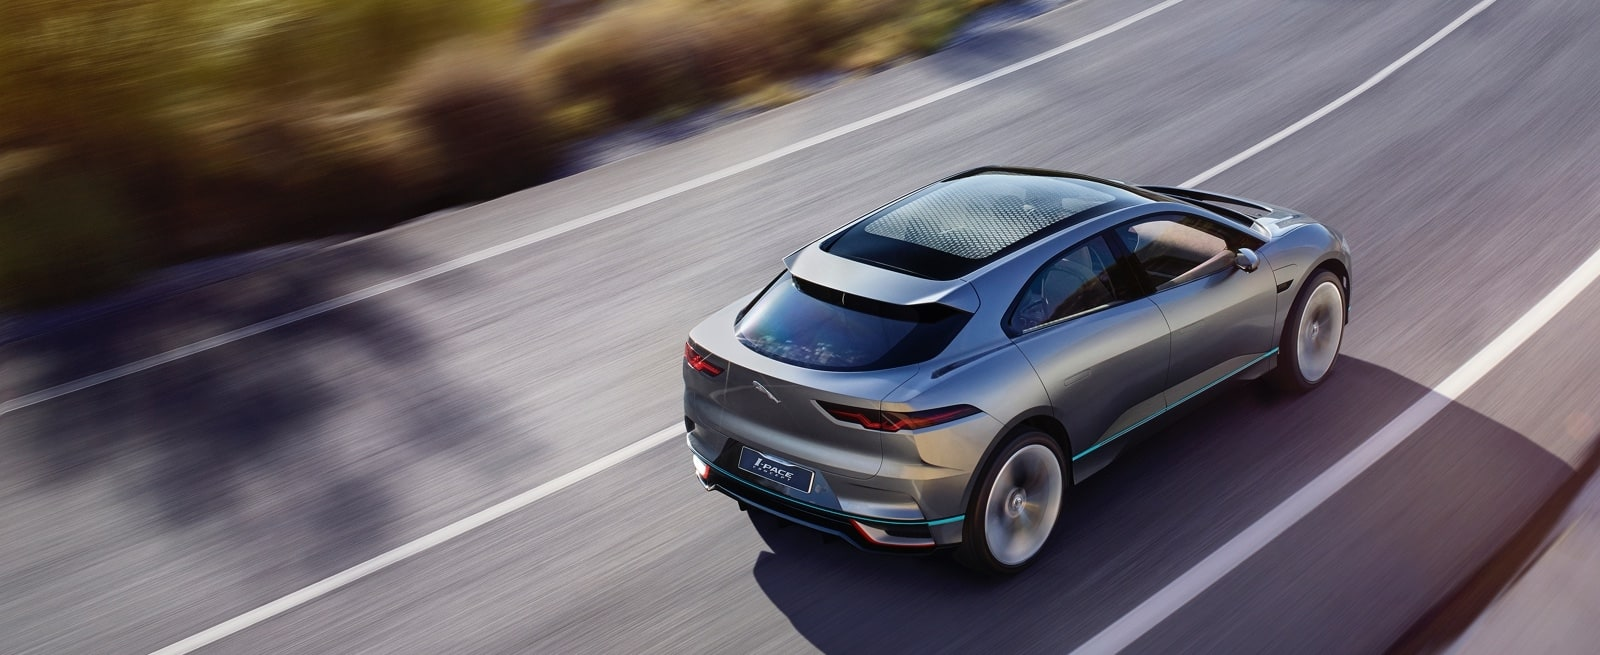 A Silver Jaguar I-Pace Driving Quickly